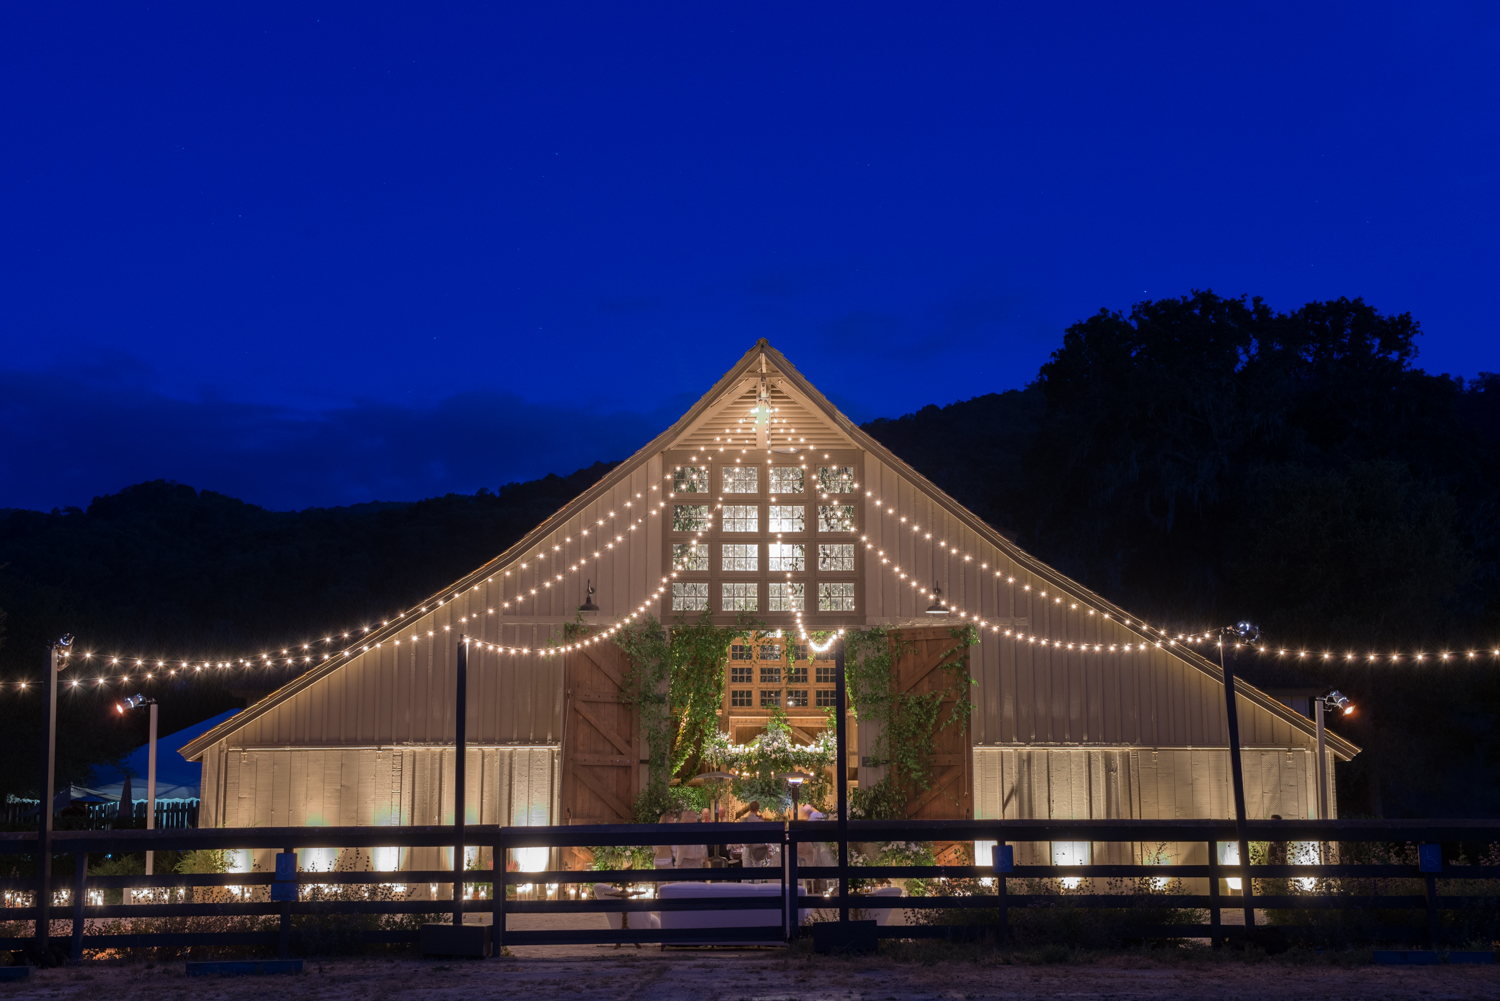 The indoor reception continues as dusk falls over the steep-roofed barn strung with lights and covered over with ivy; photo by Sylvie Gil